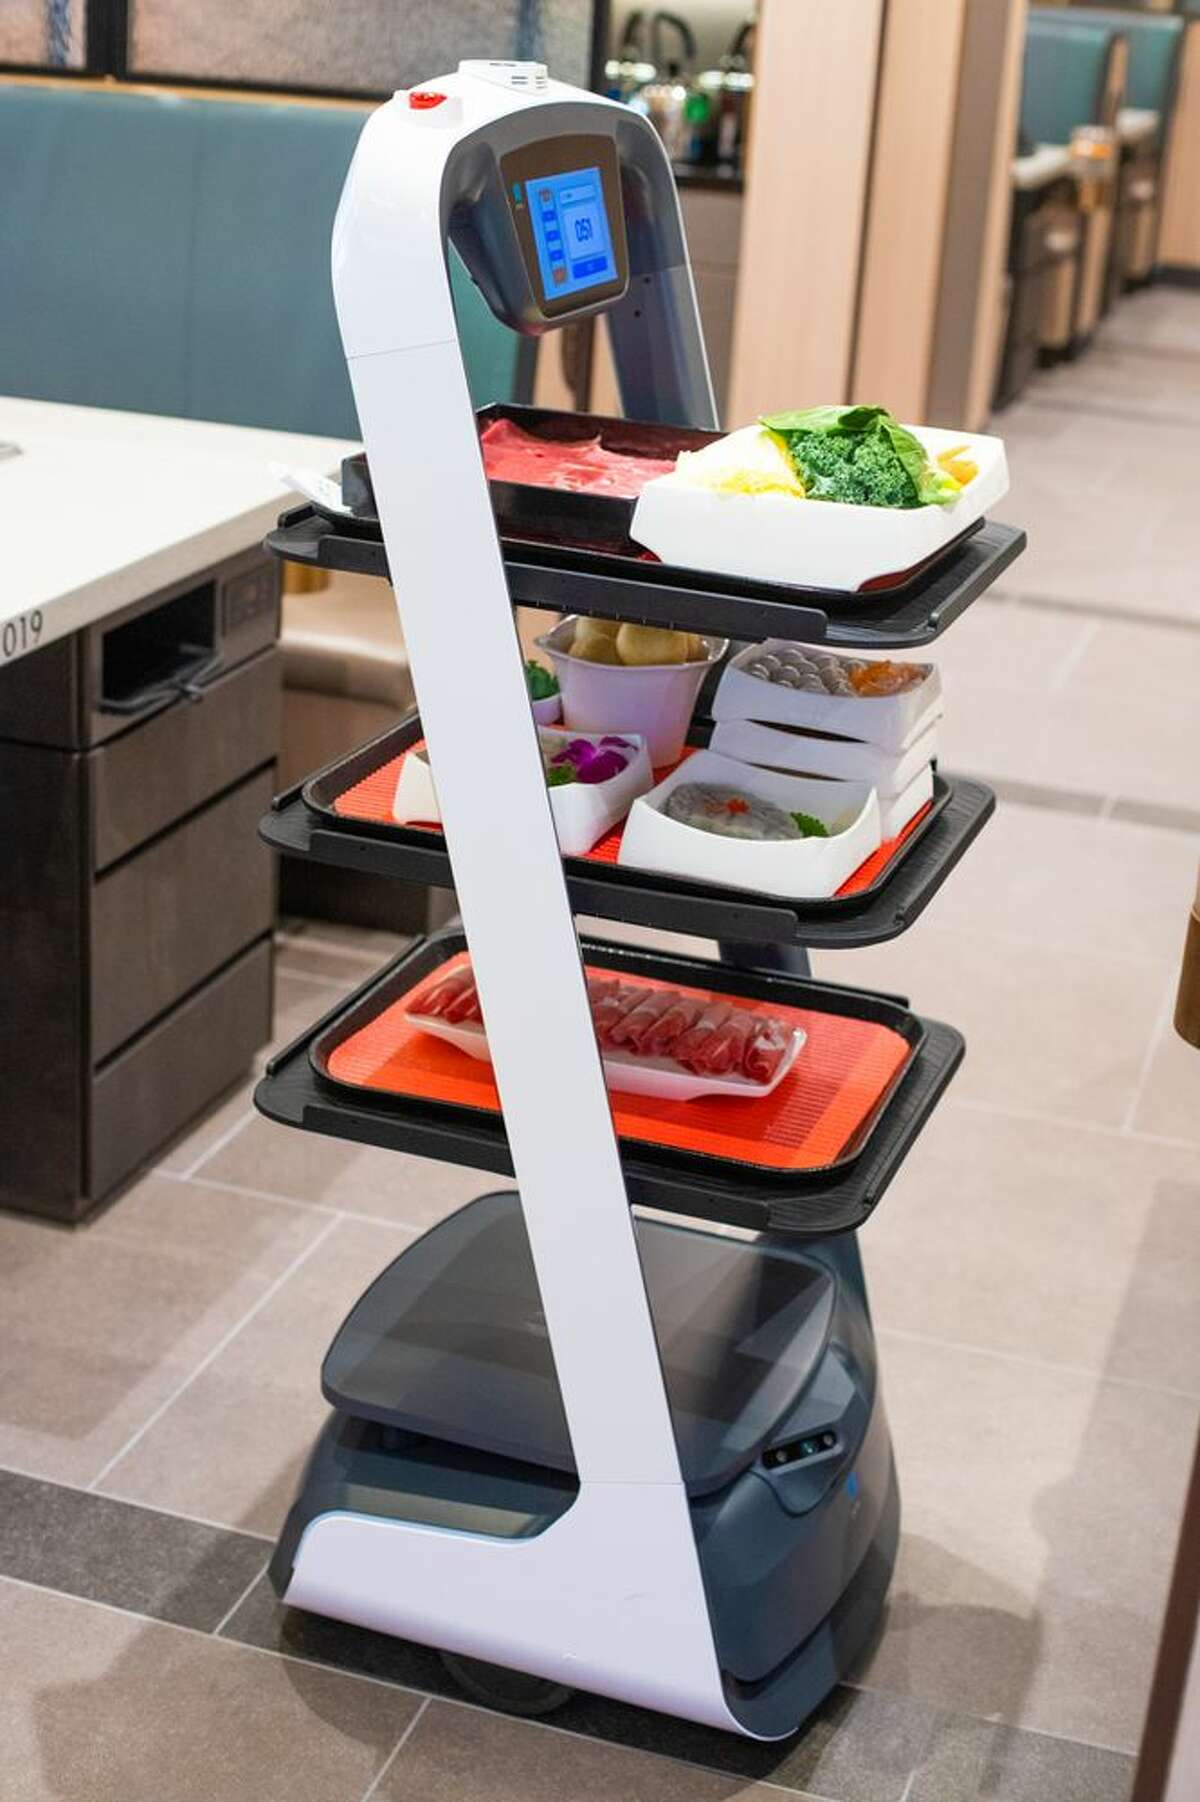 The Katy location features robot servers found at the global chain's other locations. (Courtesy HaiDiLao/Yelp)